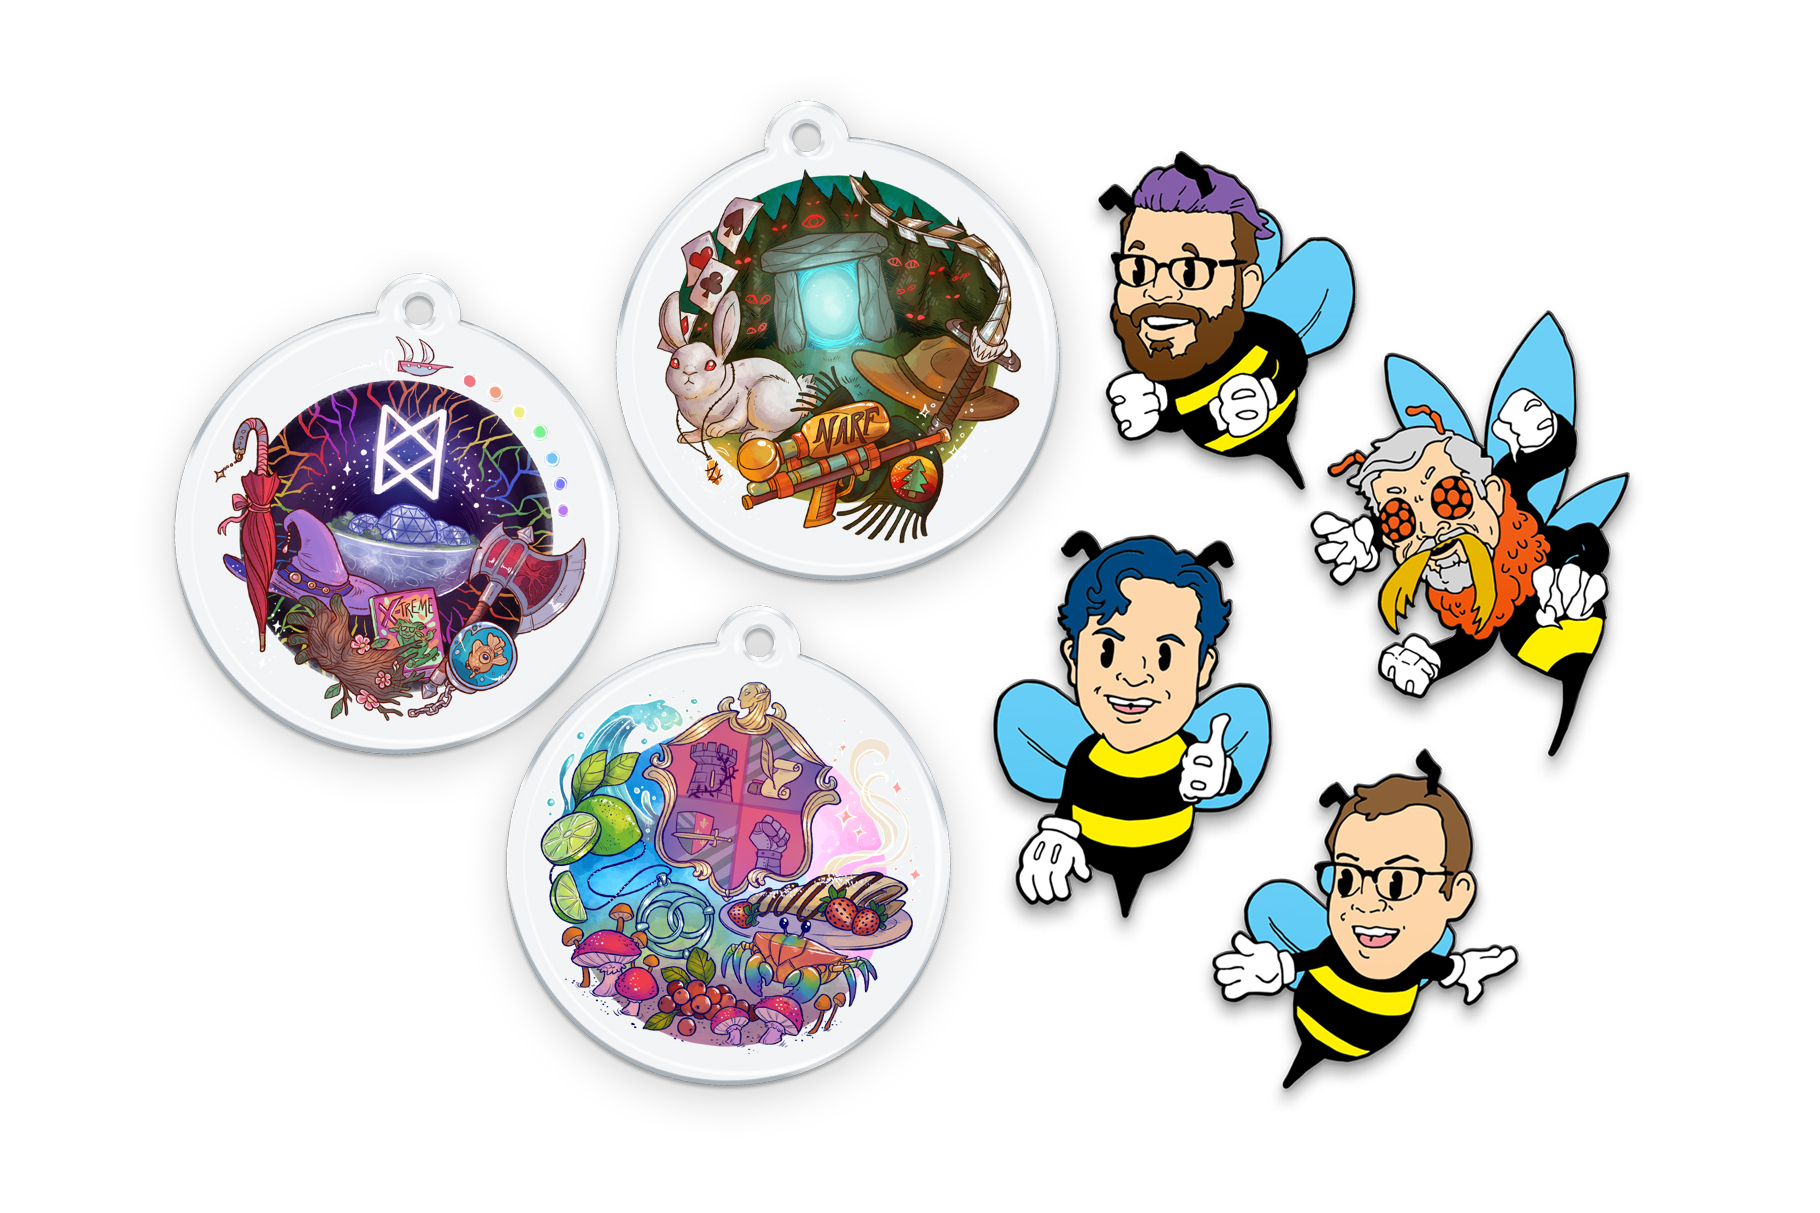 Right: Pins of the McElroys as bees. The brothers have a cartoonish appearance. Clint has mandibles, compound eyes. Left: 3 keychains with illustrations on them. One has a moonbase with an umbrella, hat, wood arm, bible, axe, and a fish. The 2nd is an archway with a rabbit, necklace, a narf gun, scarf, hat, and sword. The 3rd is an emblem surrounded by limes, a pendant, berries, mushrooms, a crab, and a crepe